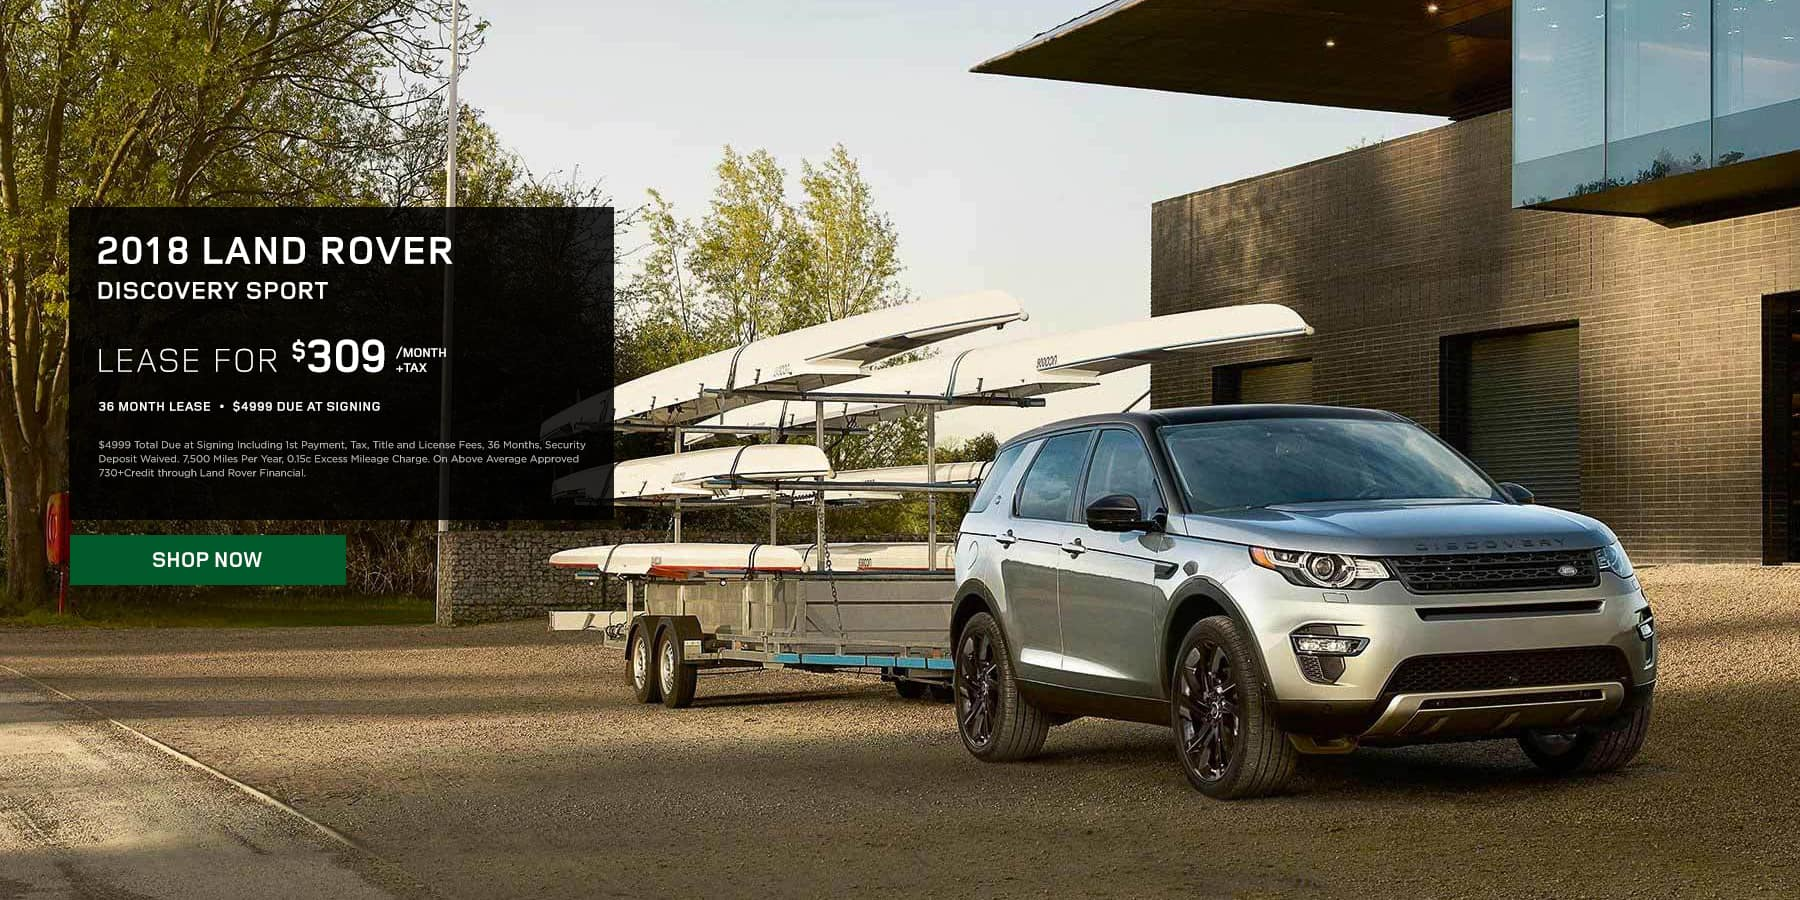 2018 Lr Discovery Sport Land Rover Mission Viejo